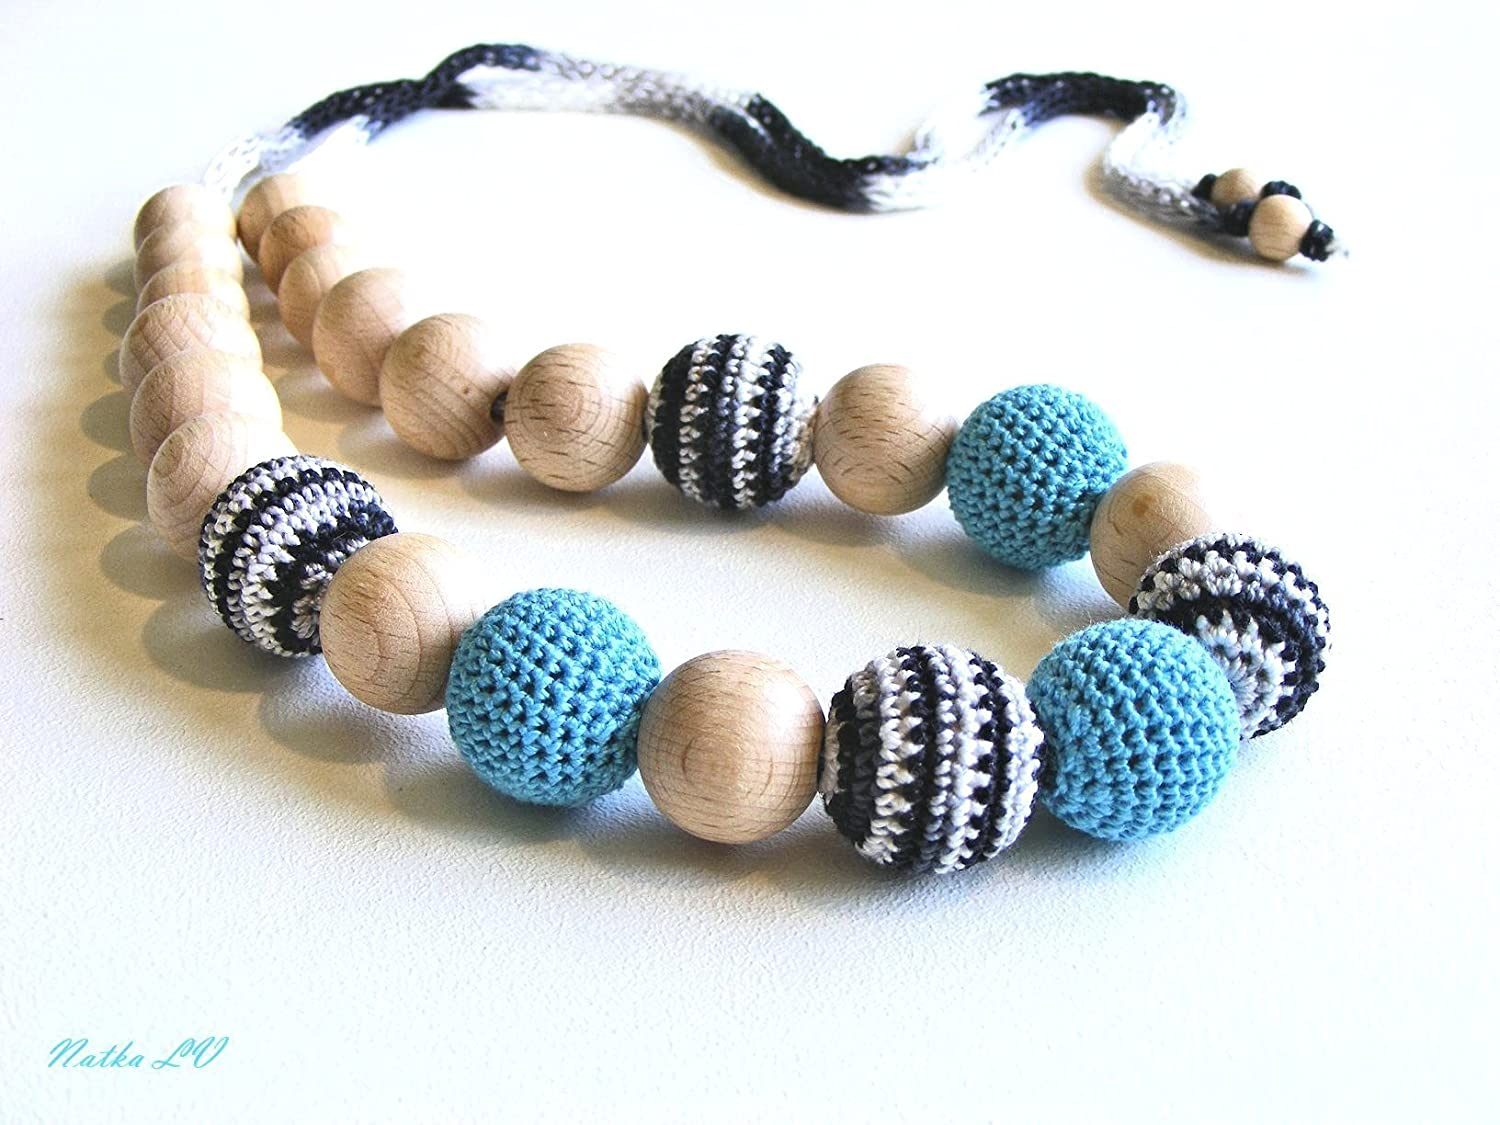 Teething necklace in light blue, black, white, nursing necklace, breastfeeding, crochet wooden necklace, women's jewelry, natural, mom's necklace women's jewelry mom's necklace